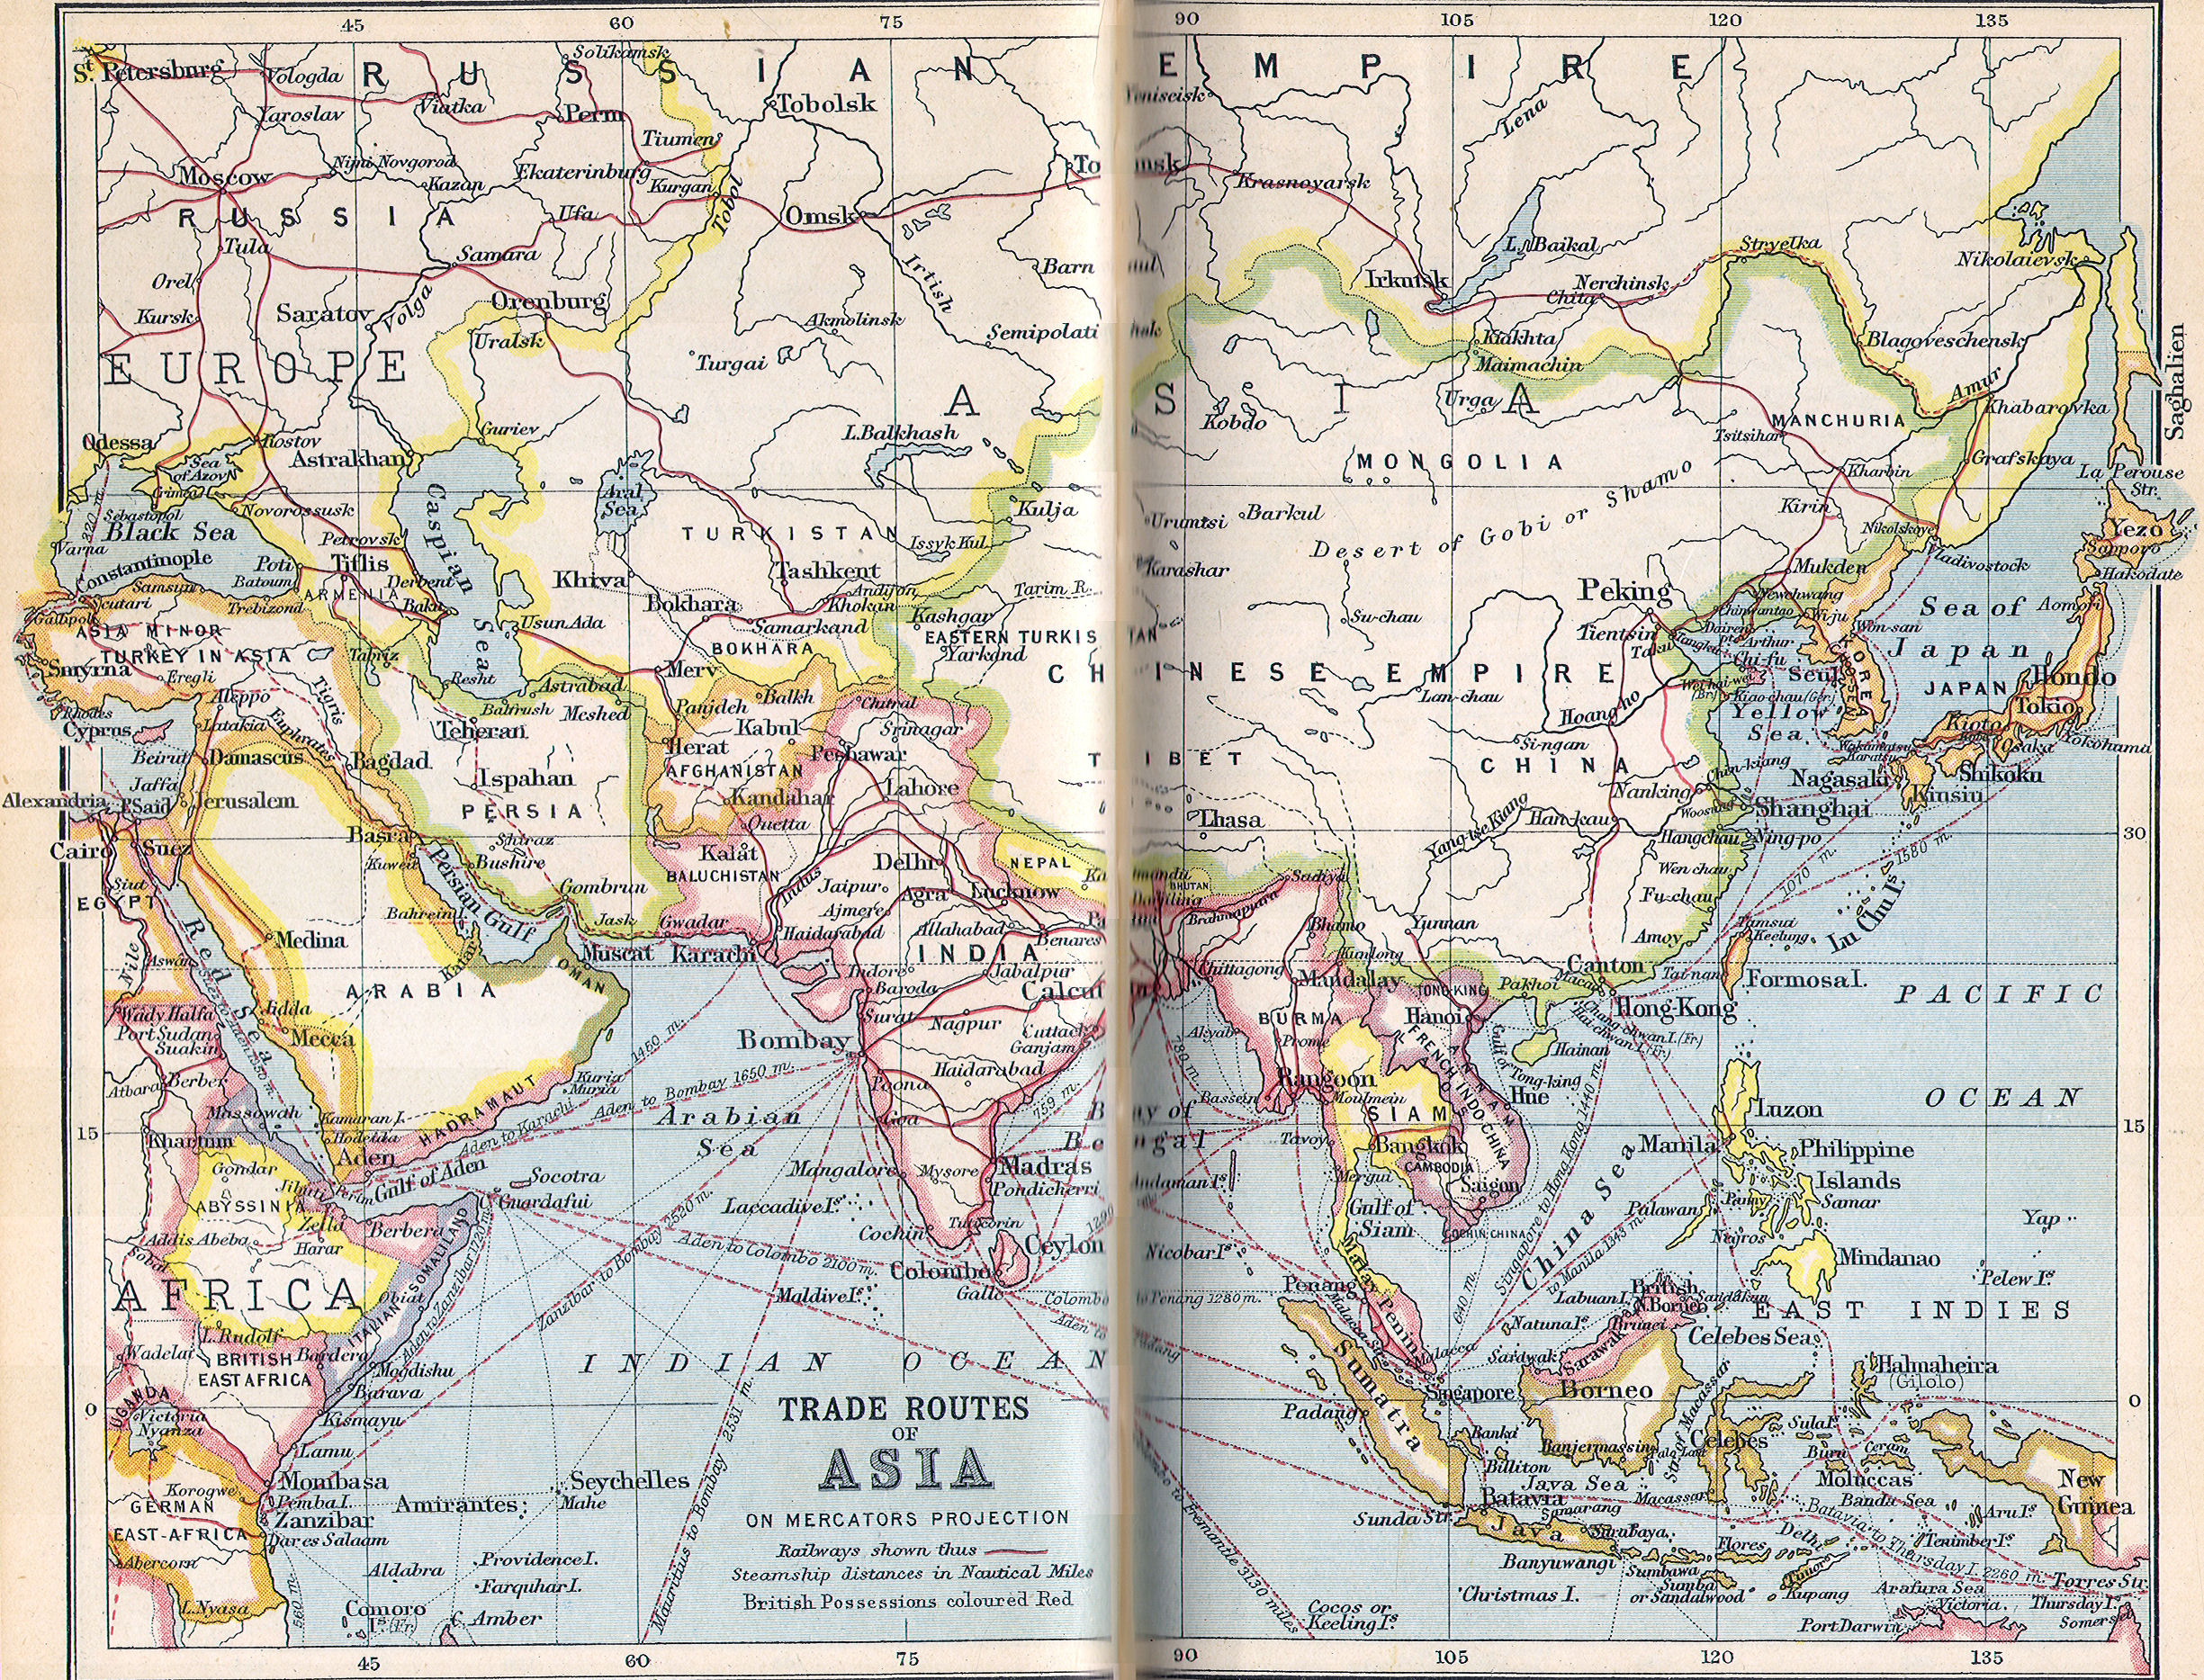 http://www.heritage-history.com/maps/lhasia/asia043.jpg